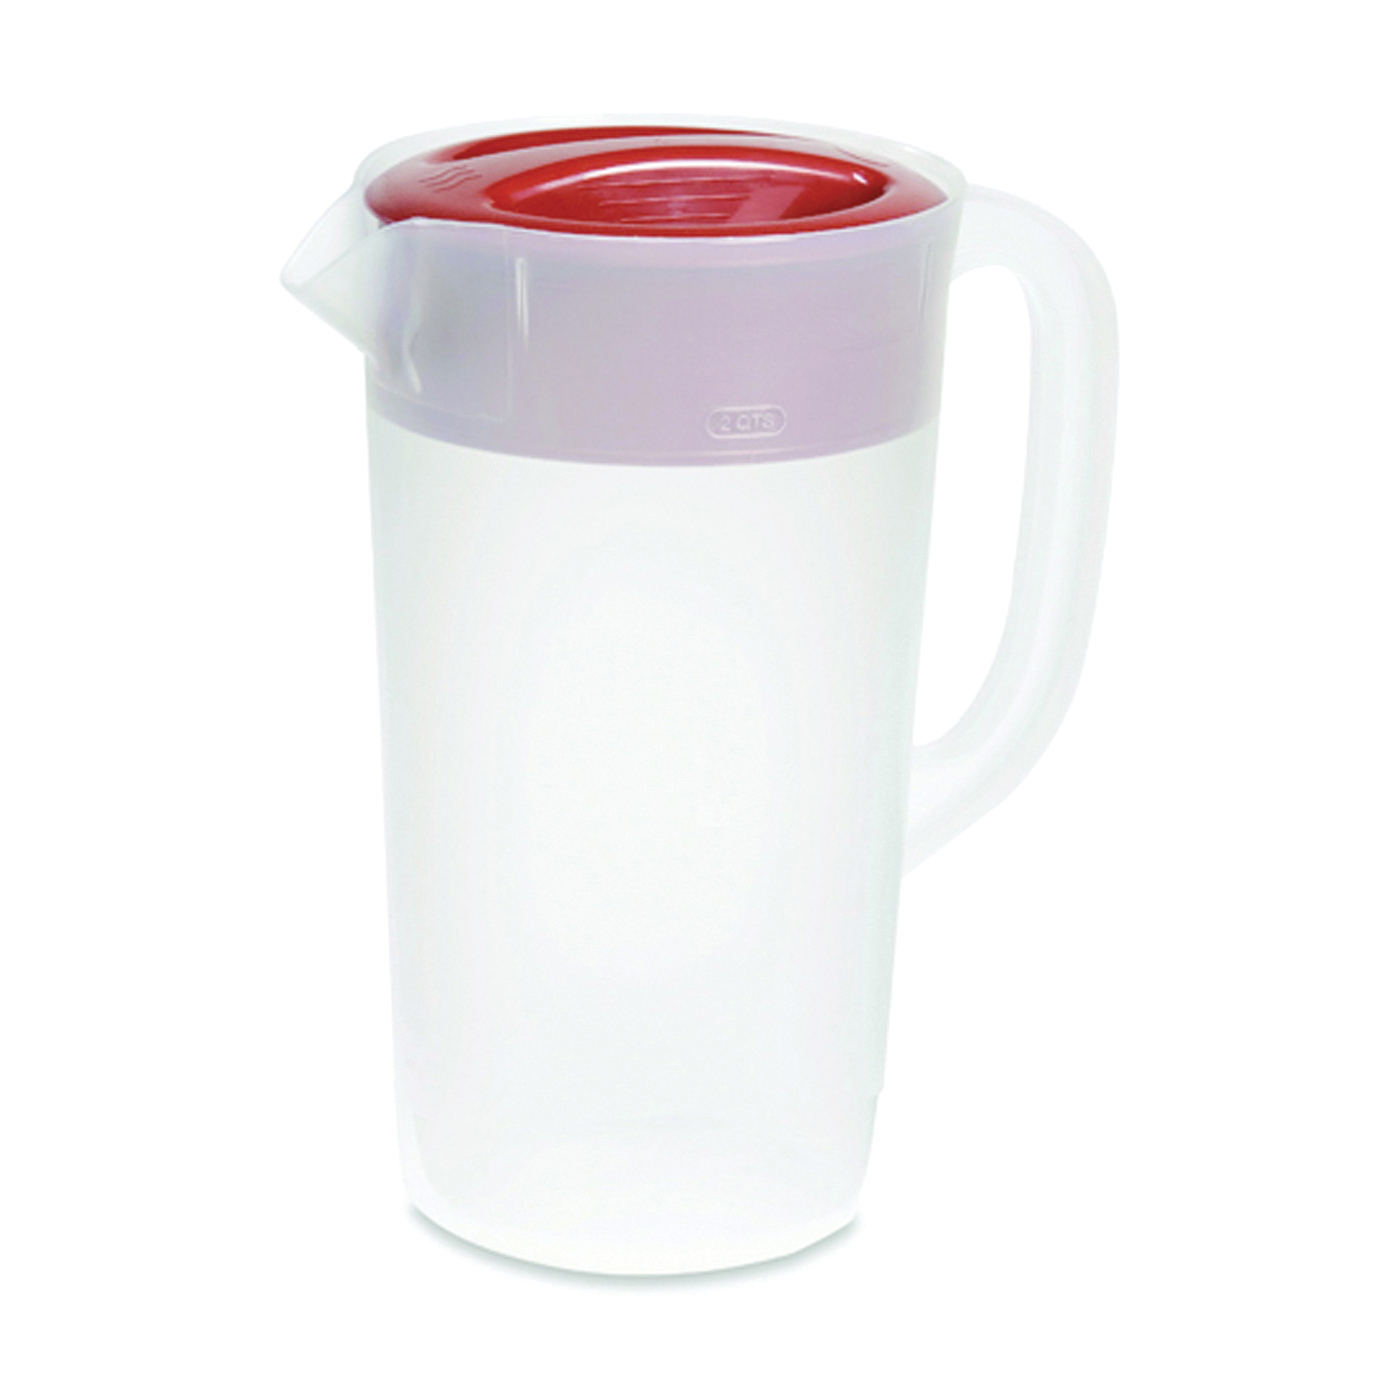 Picture of Rubbermaid 1777154 Pitcher, 2.25 qt Capacity, Plastic, Clear/Red